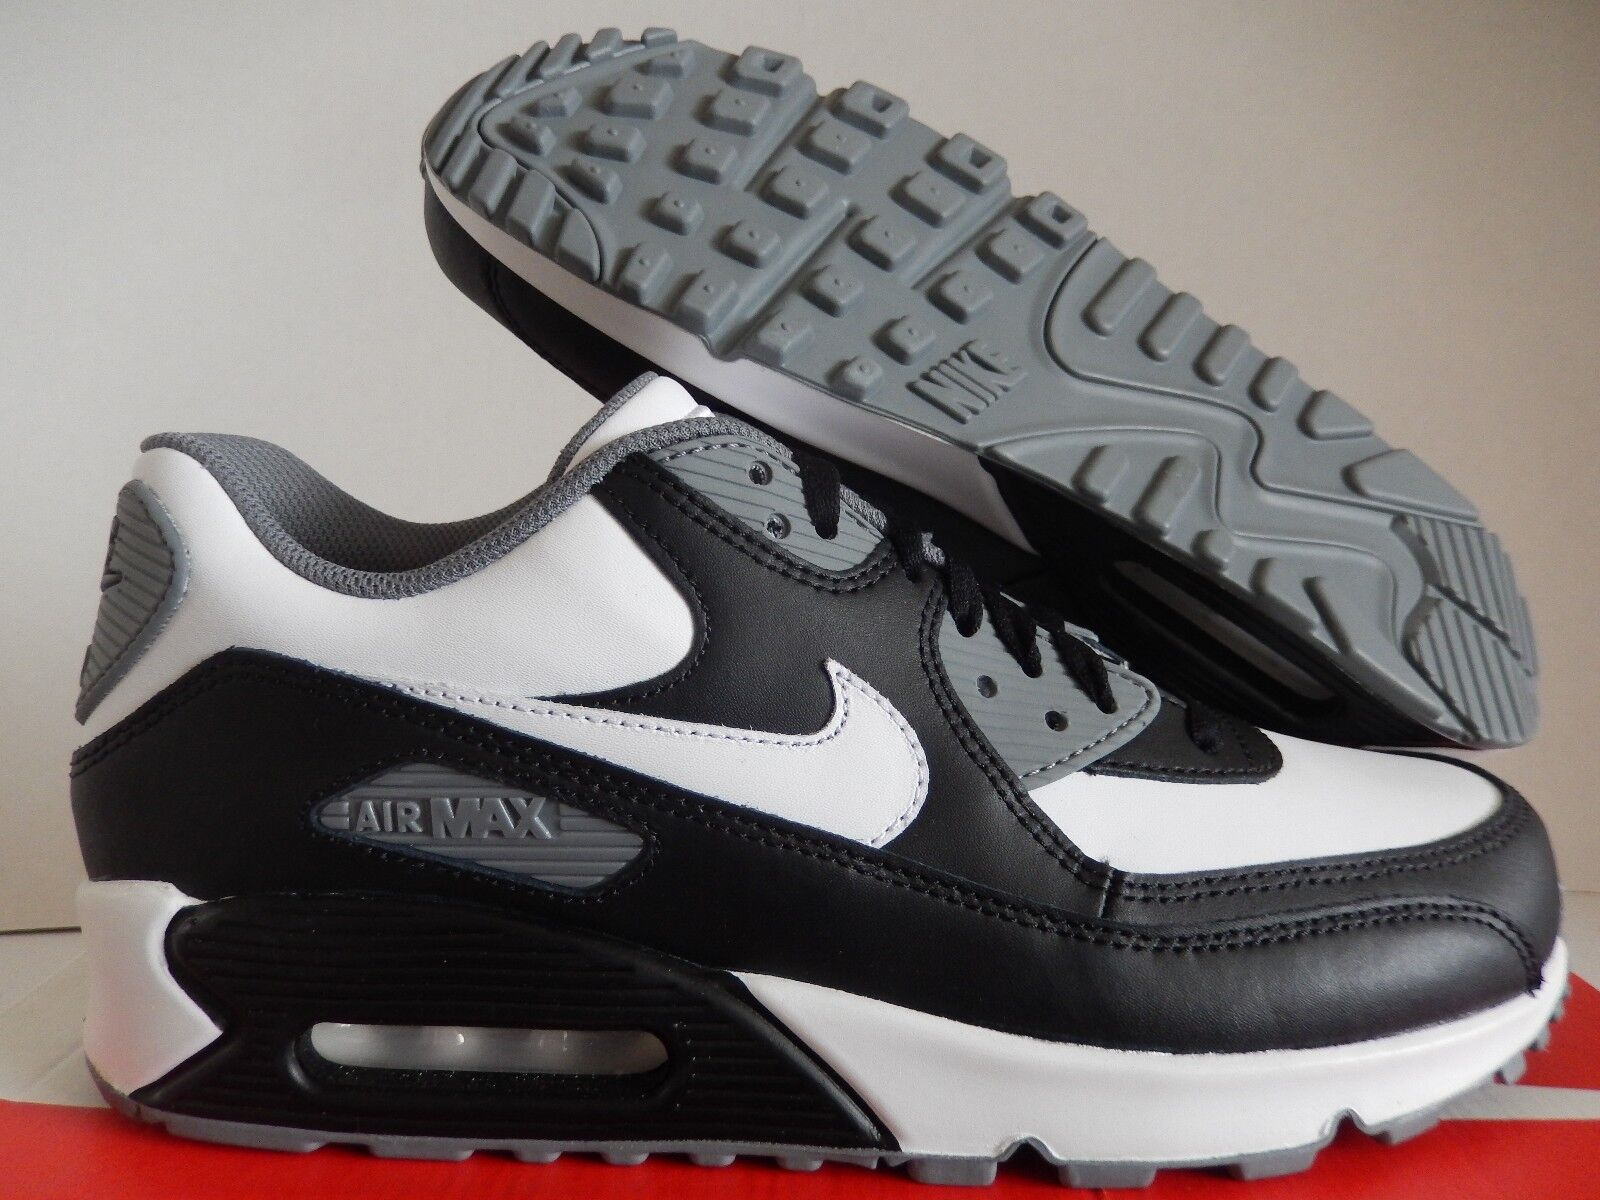 NIKE AIR MAX 90 ID BLACK-WHITE-GREY Price reduction New shoes for men and women, limited time discount